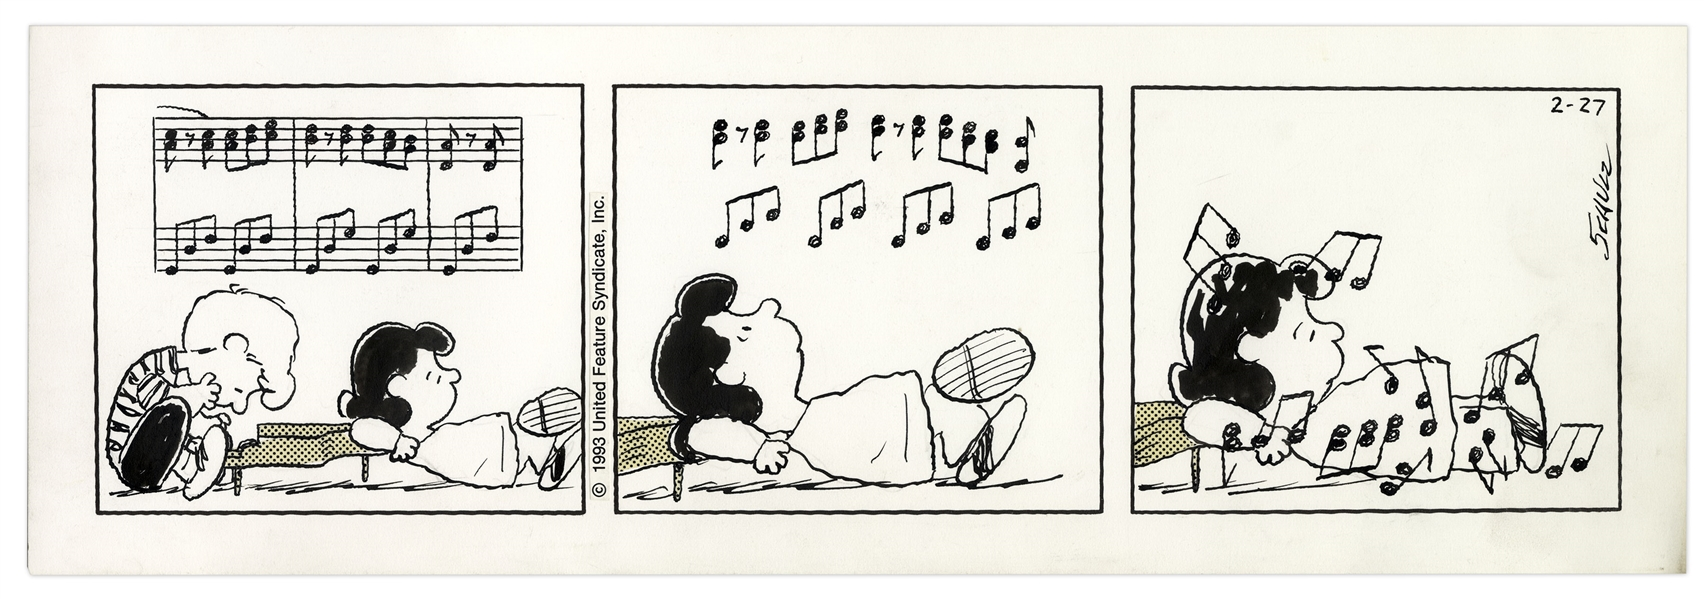 Charles Schulz Hand-Drawn ''Peanuts'' Strip From 1993 Featuring Lucy & Schroeder at His Piano